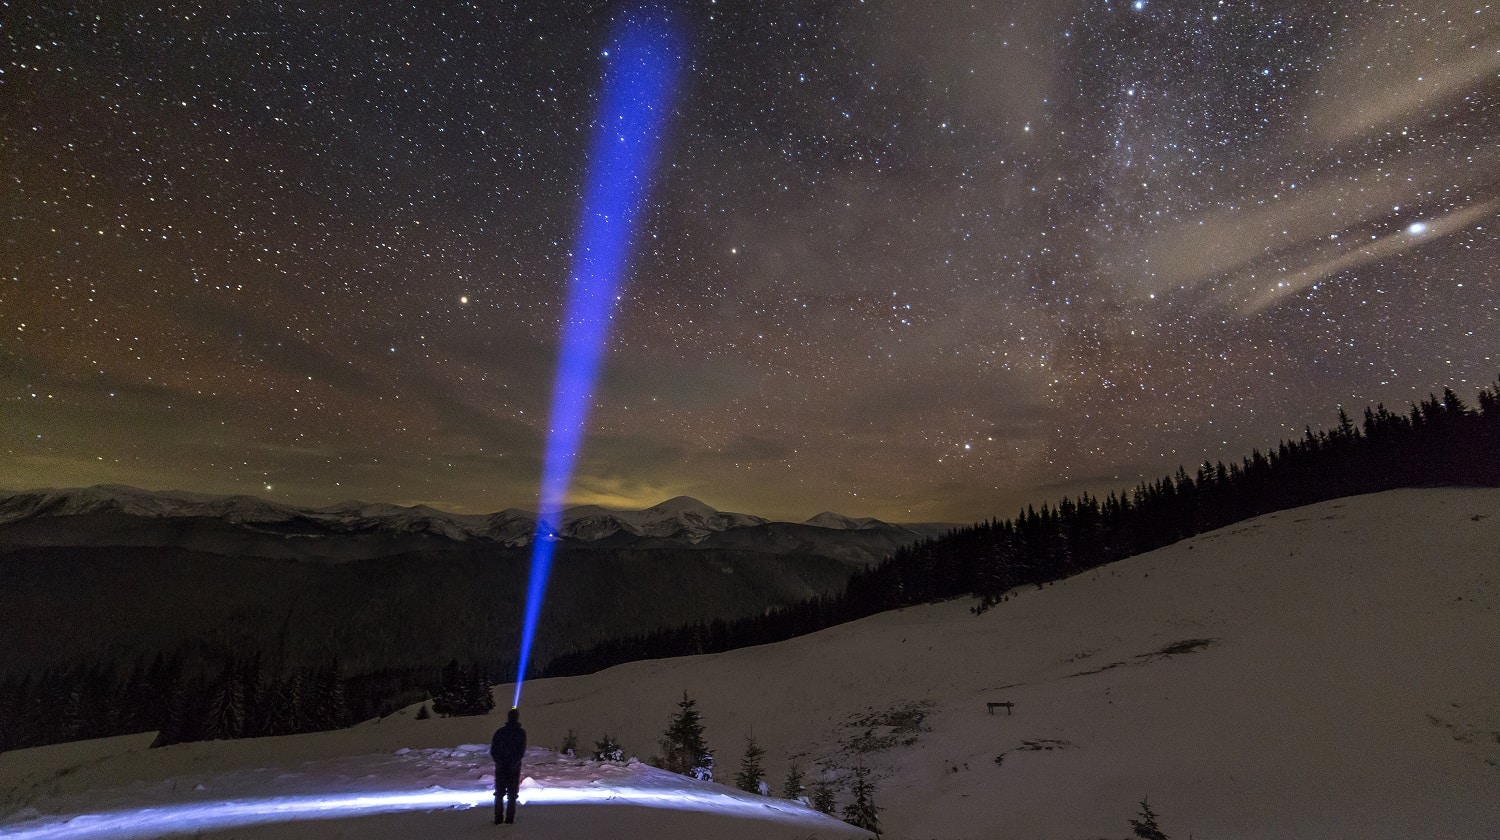 Back view of man with head flashlight standing on snowy valley under beautiful dark blue winter starry sky, bright blue beam on stars and mountains ridge background. Night photography, light painting.